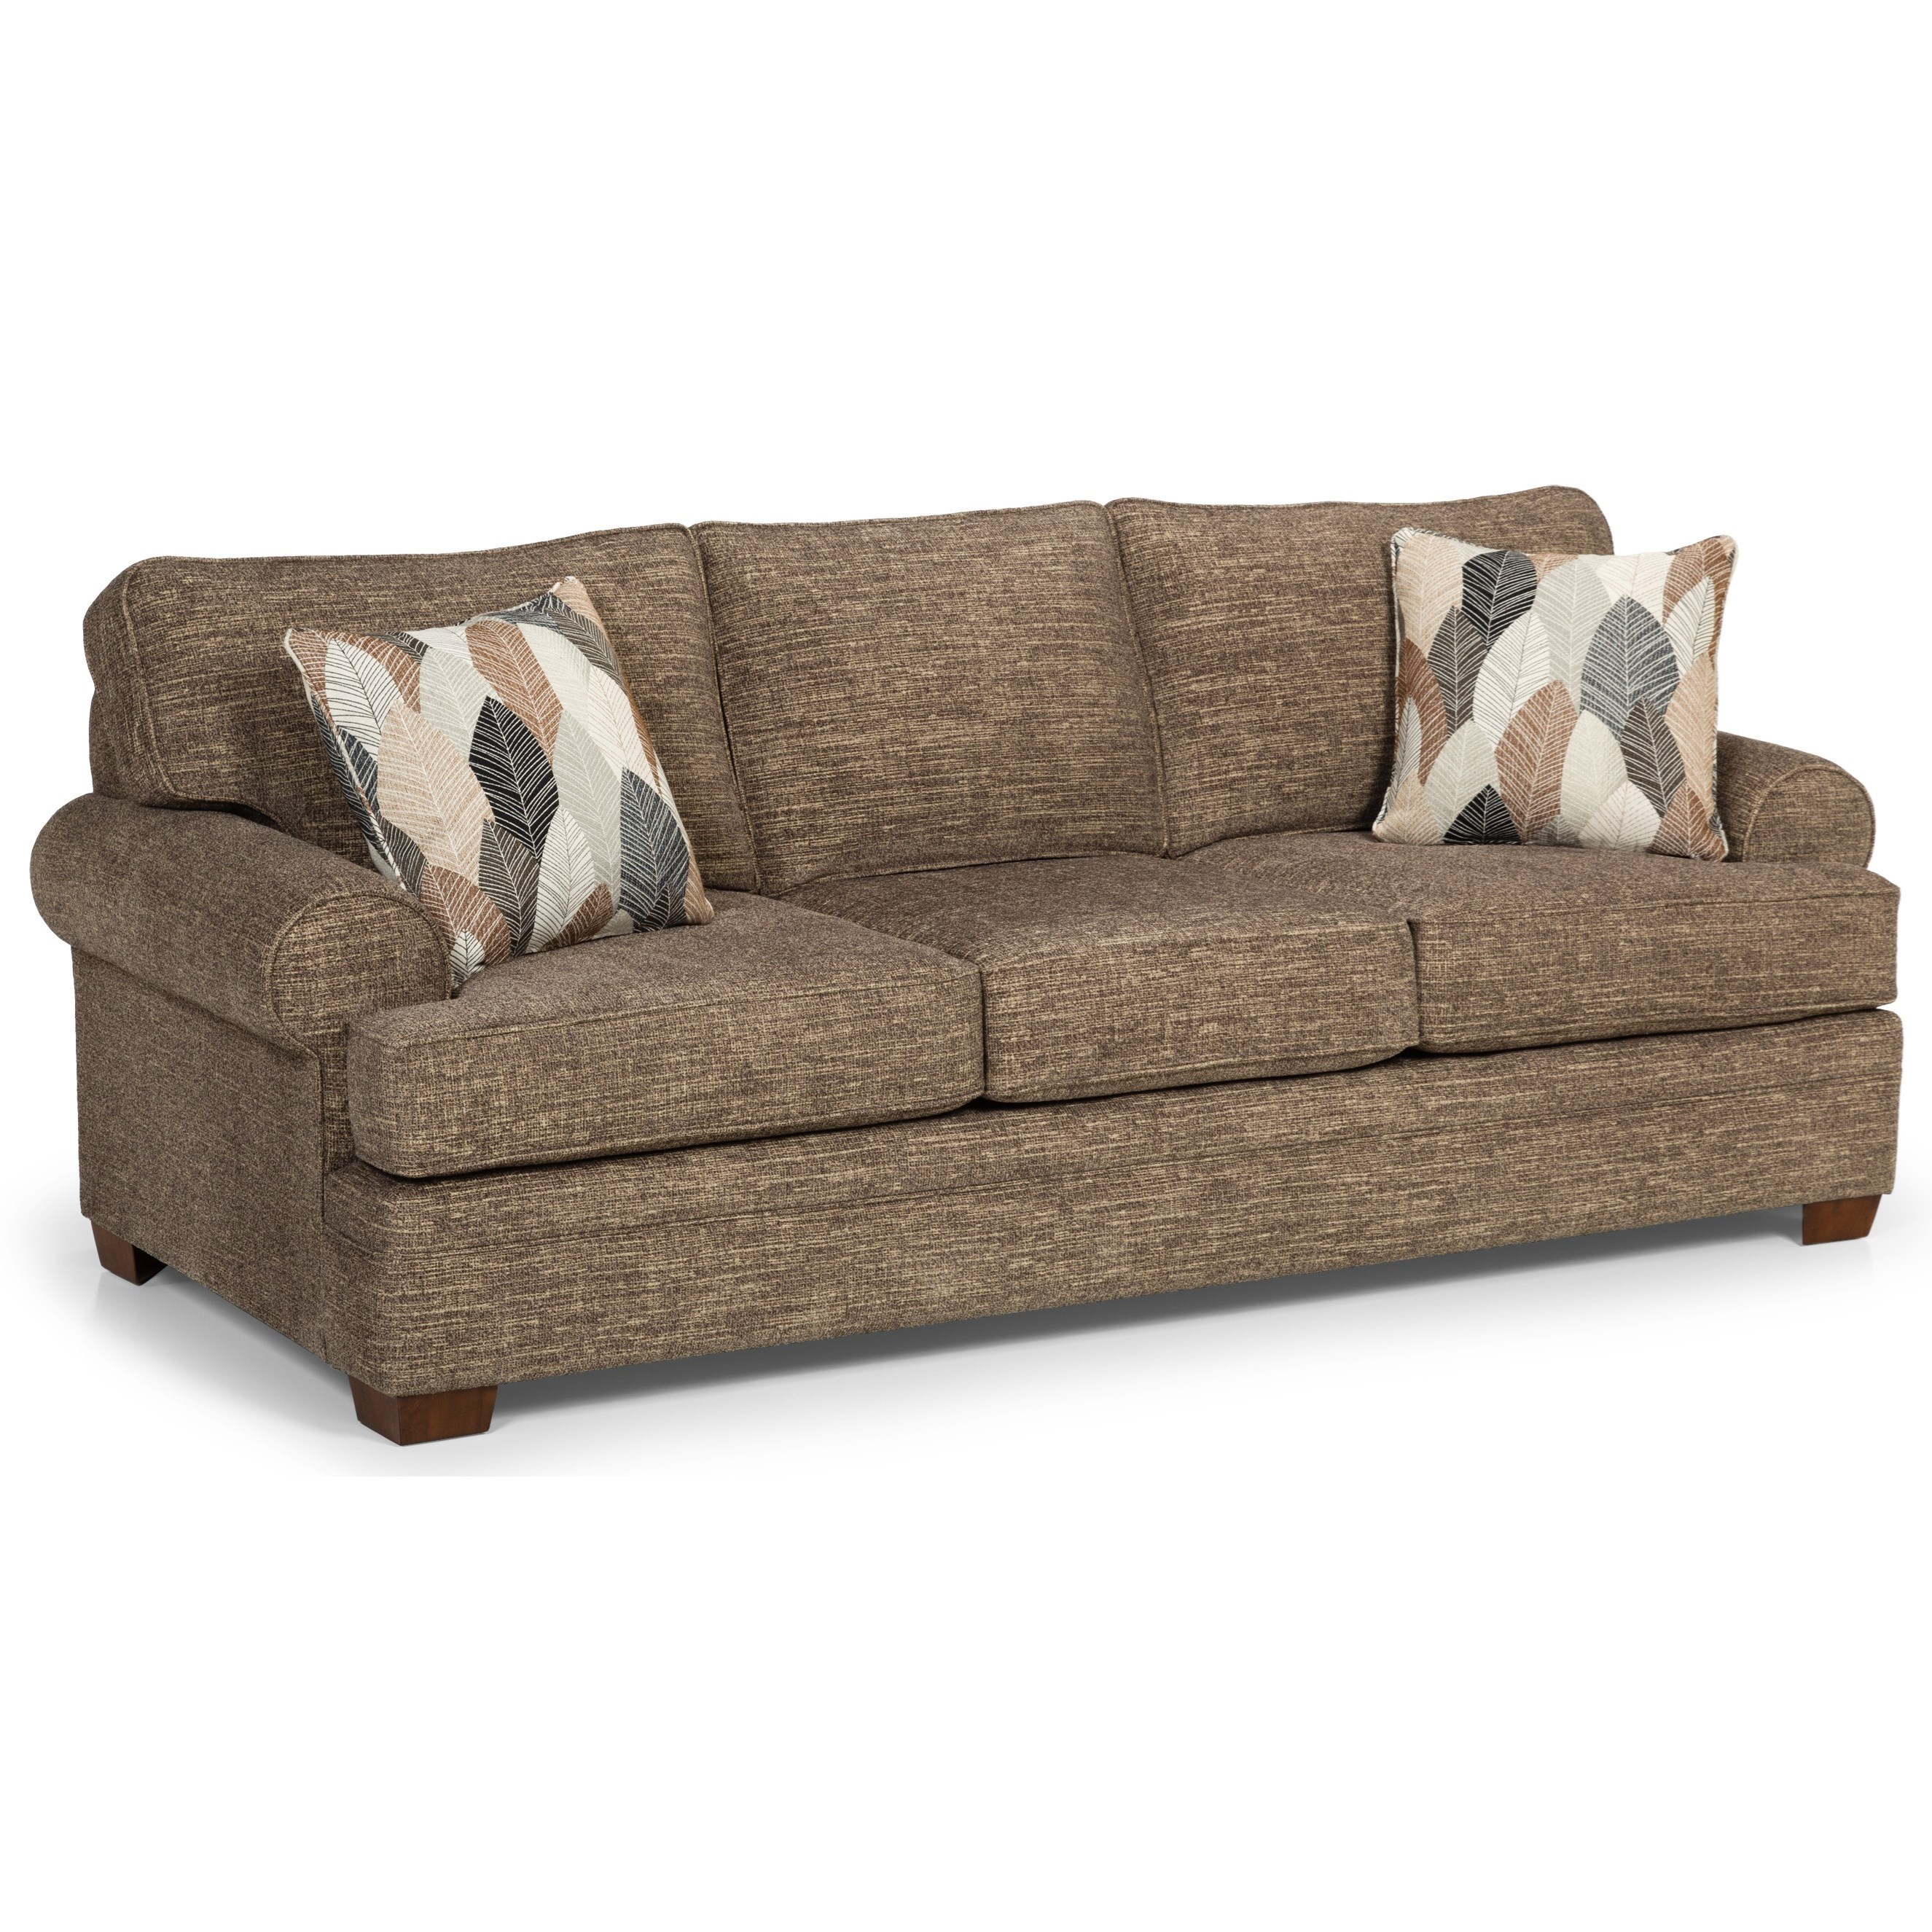 one arm sofa name really deep uk sunset home 422 casual with wide rolled arms sadler s